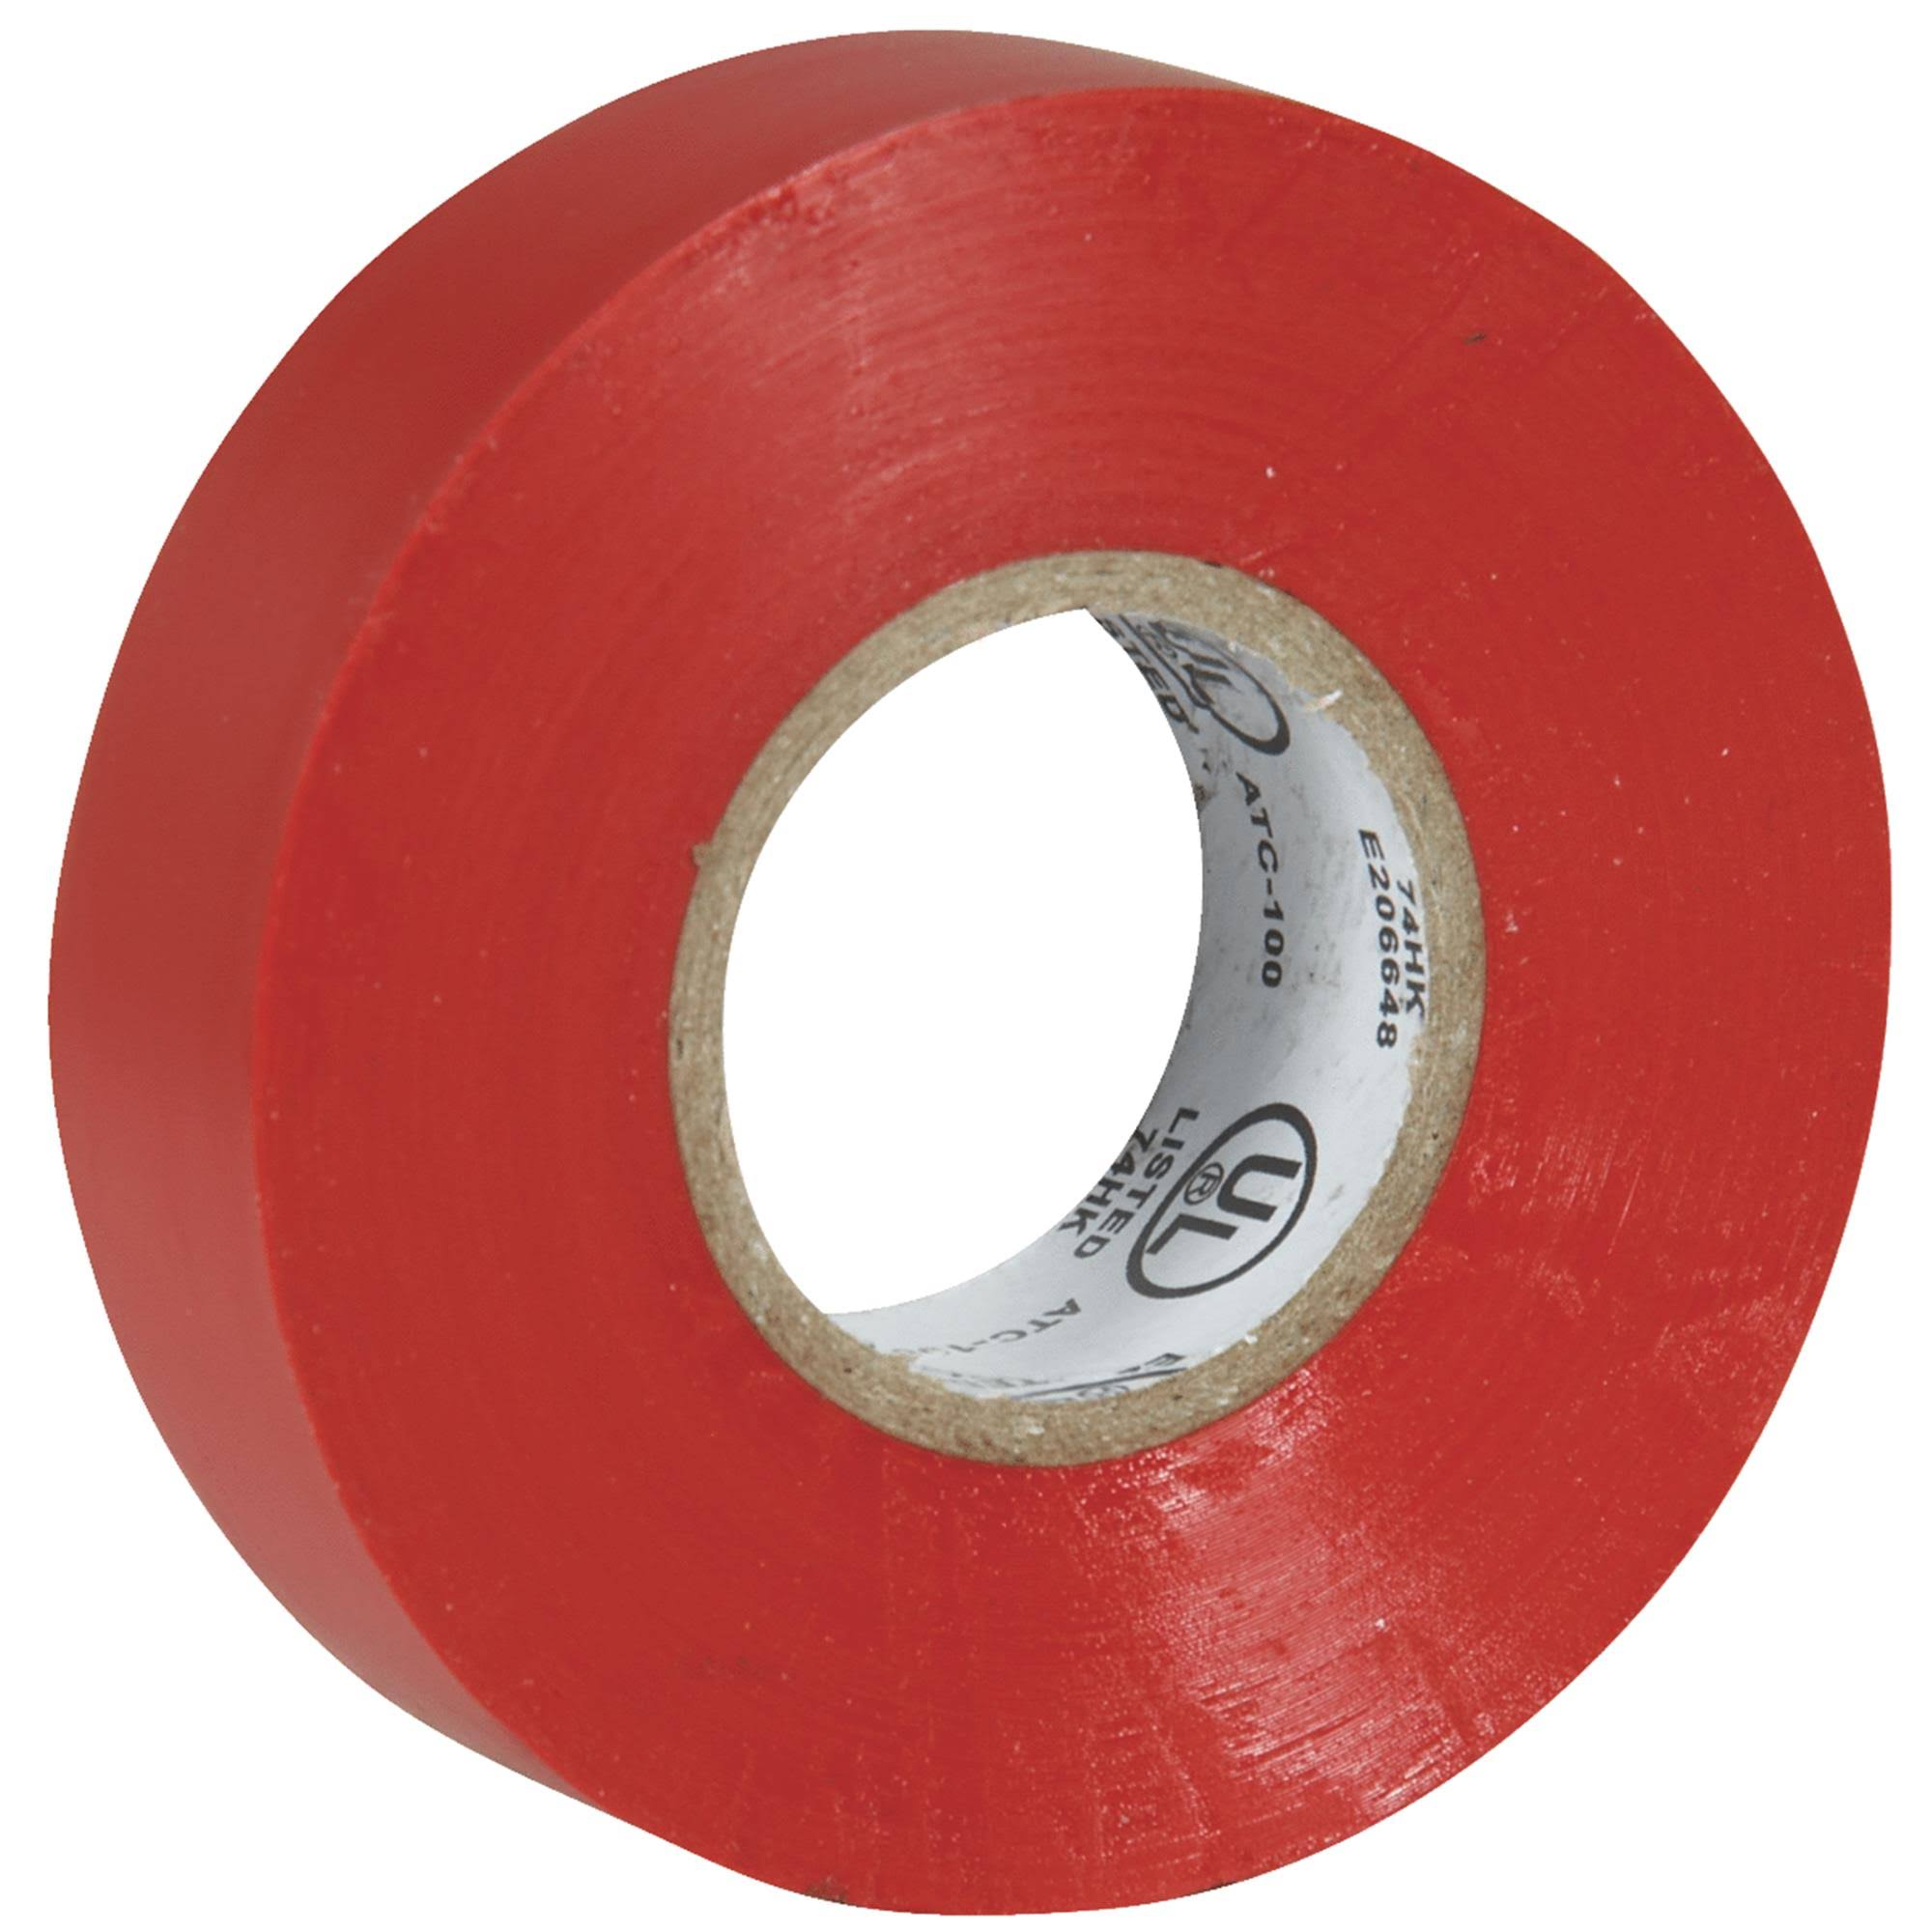 Do It Vinyl Electrical Tape - 528234